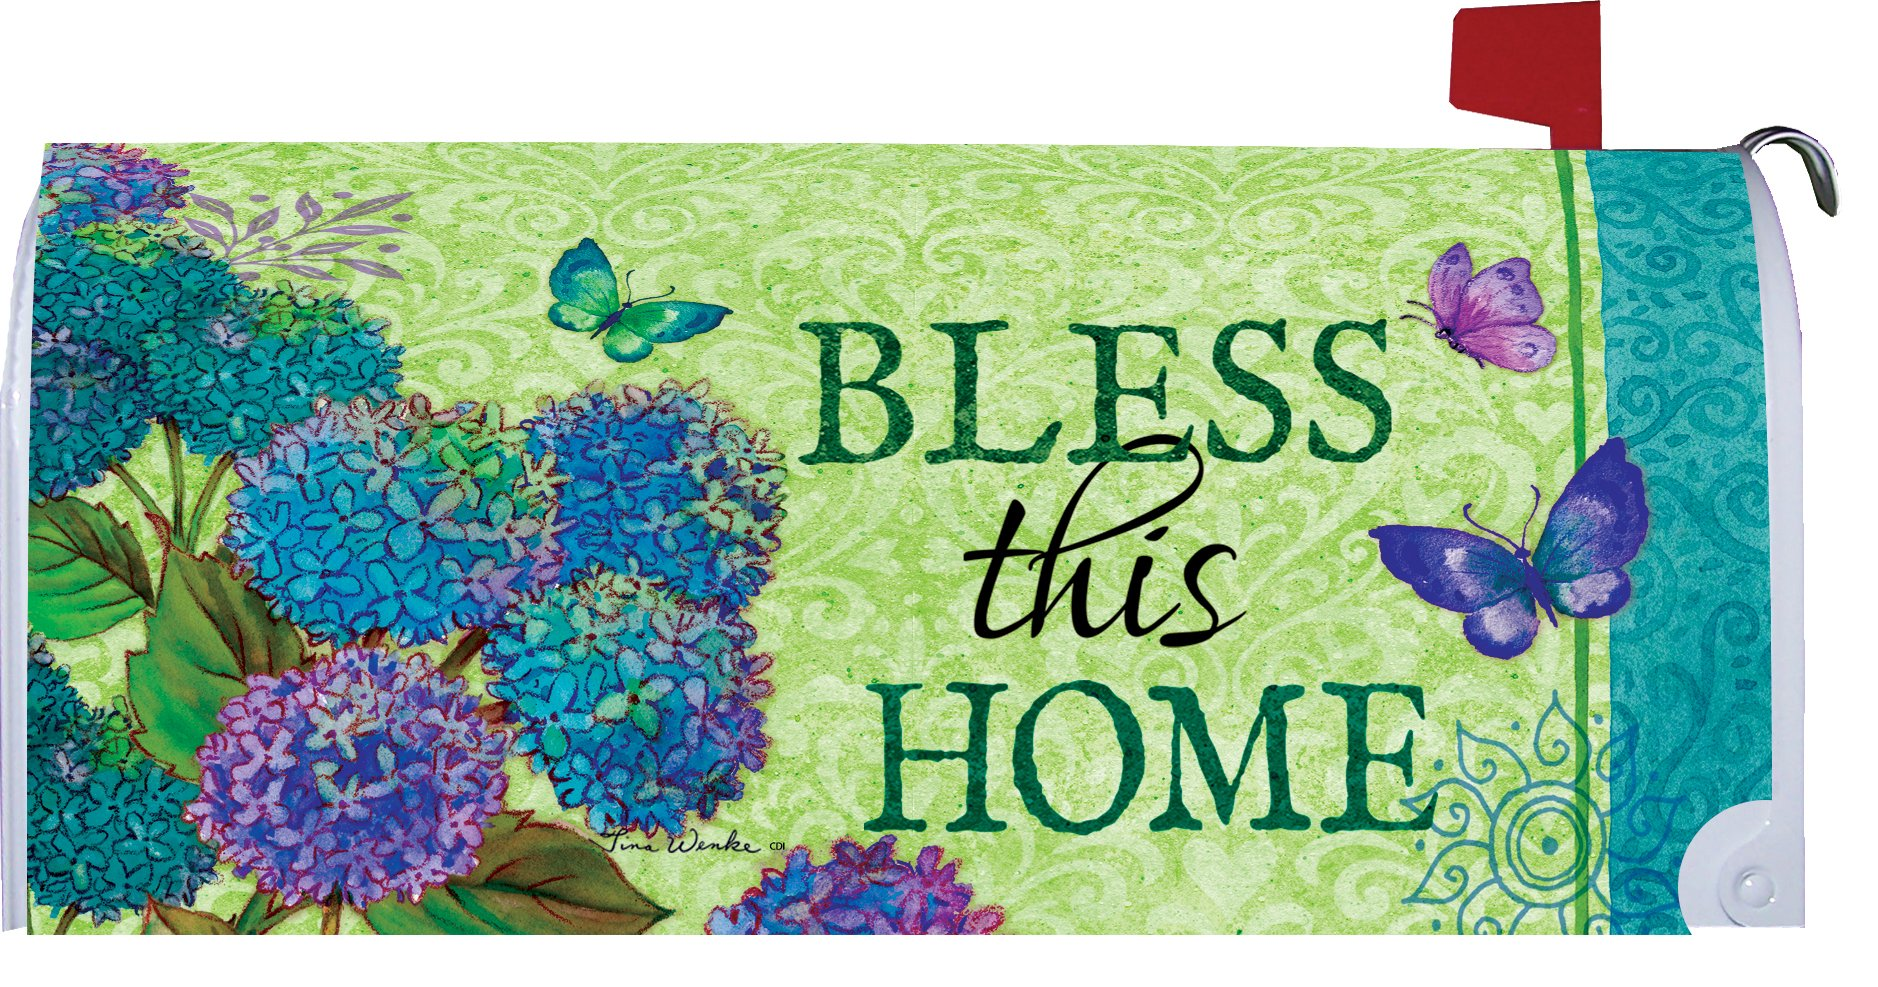 Bless This Home - Mailbox Makover Cover - Vinyl witn Magnetic Strips for Steel Standard Rural Mailbox - Copyright, Licensed and Trademarked by Custom Decor Inc. by Custom Decor